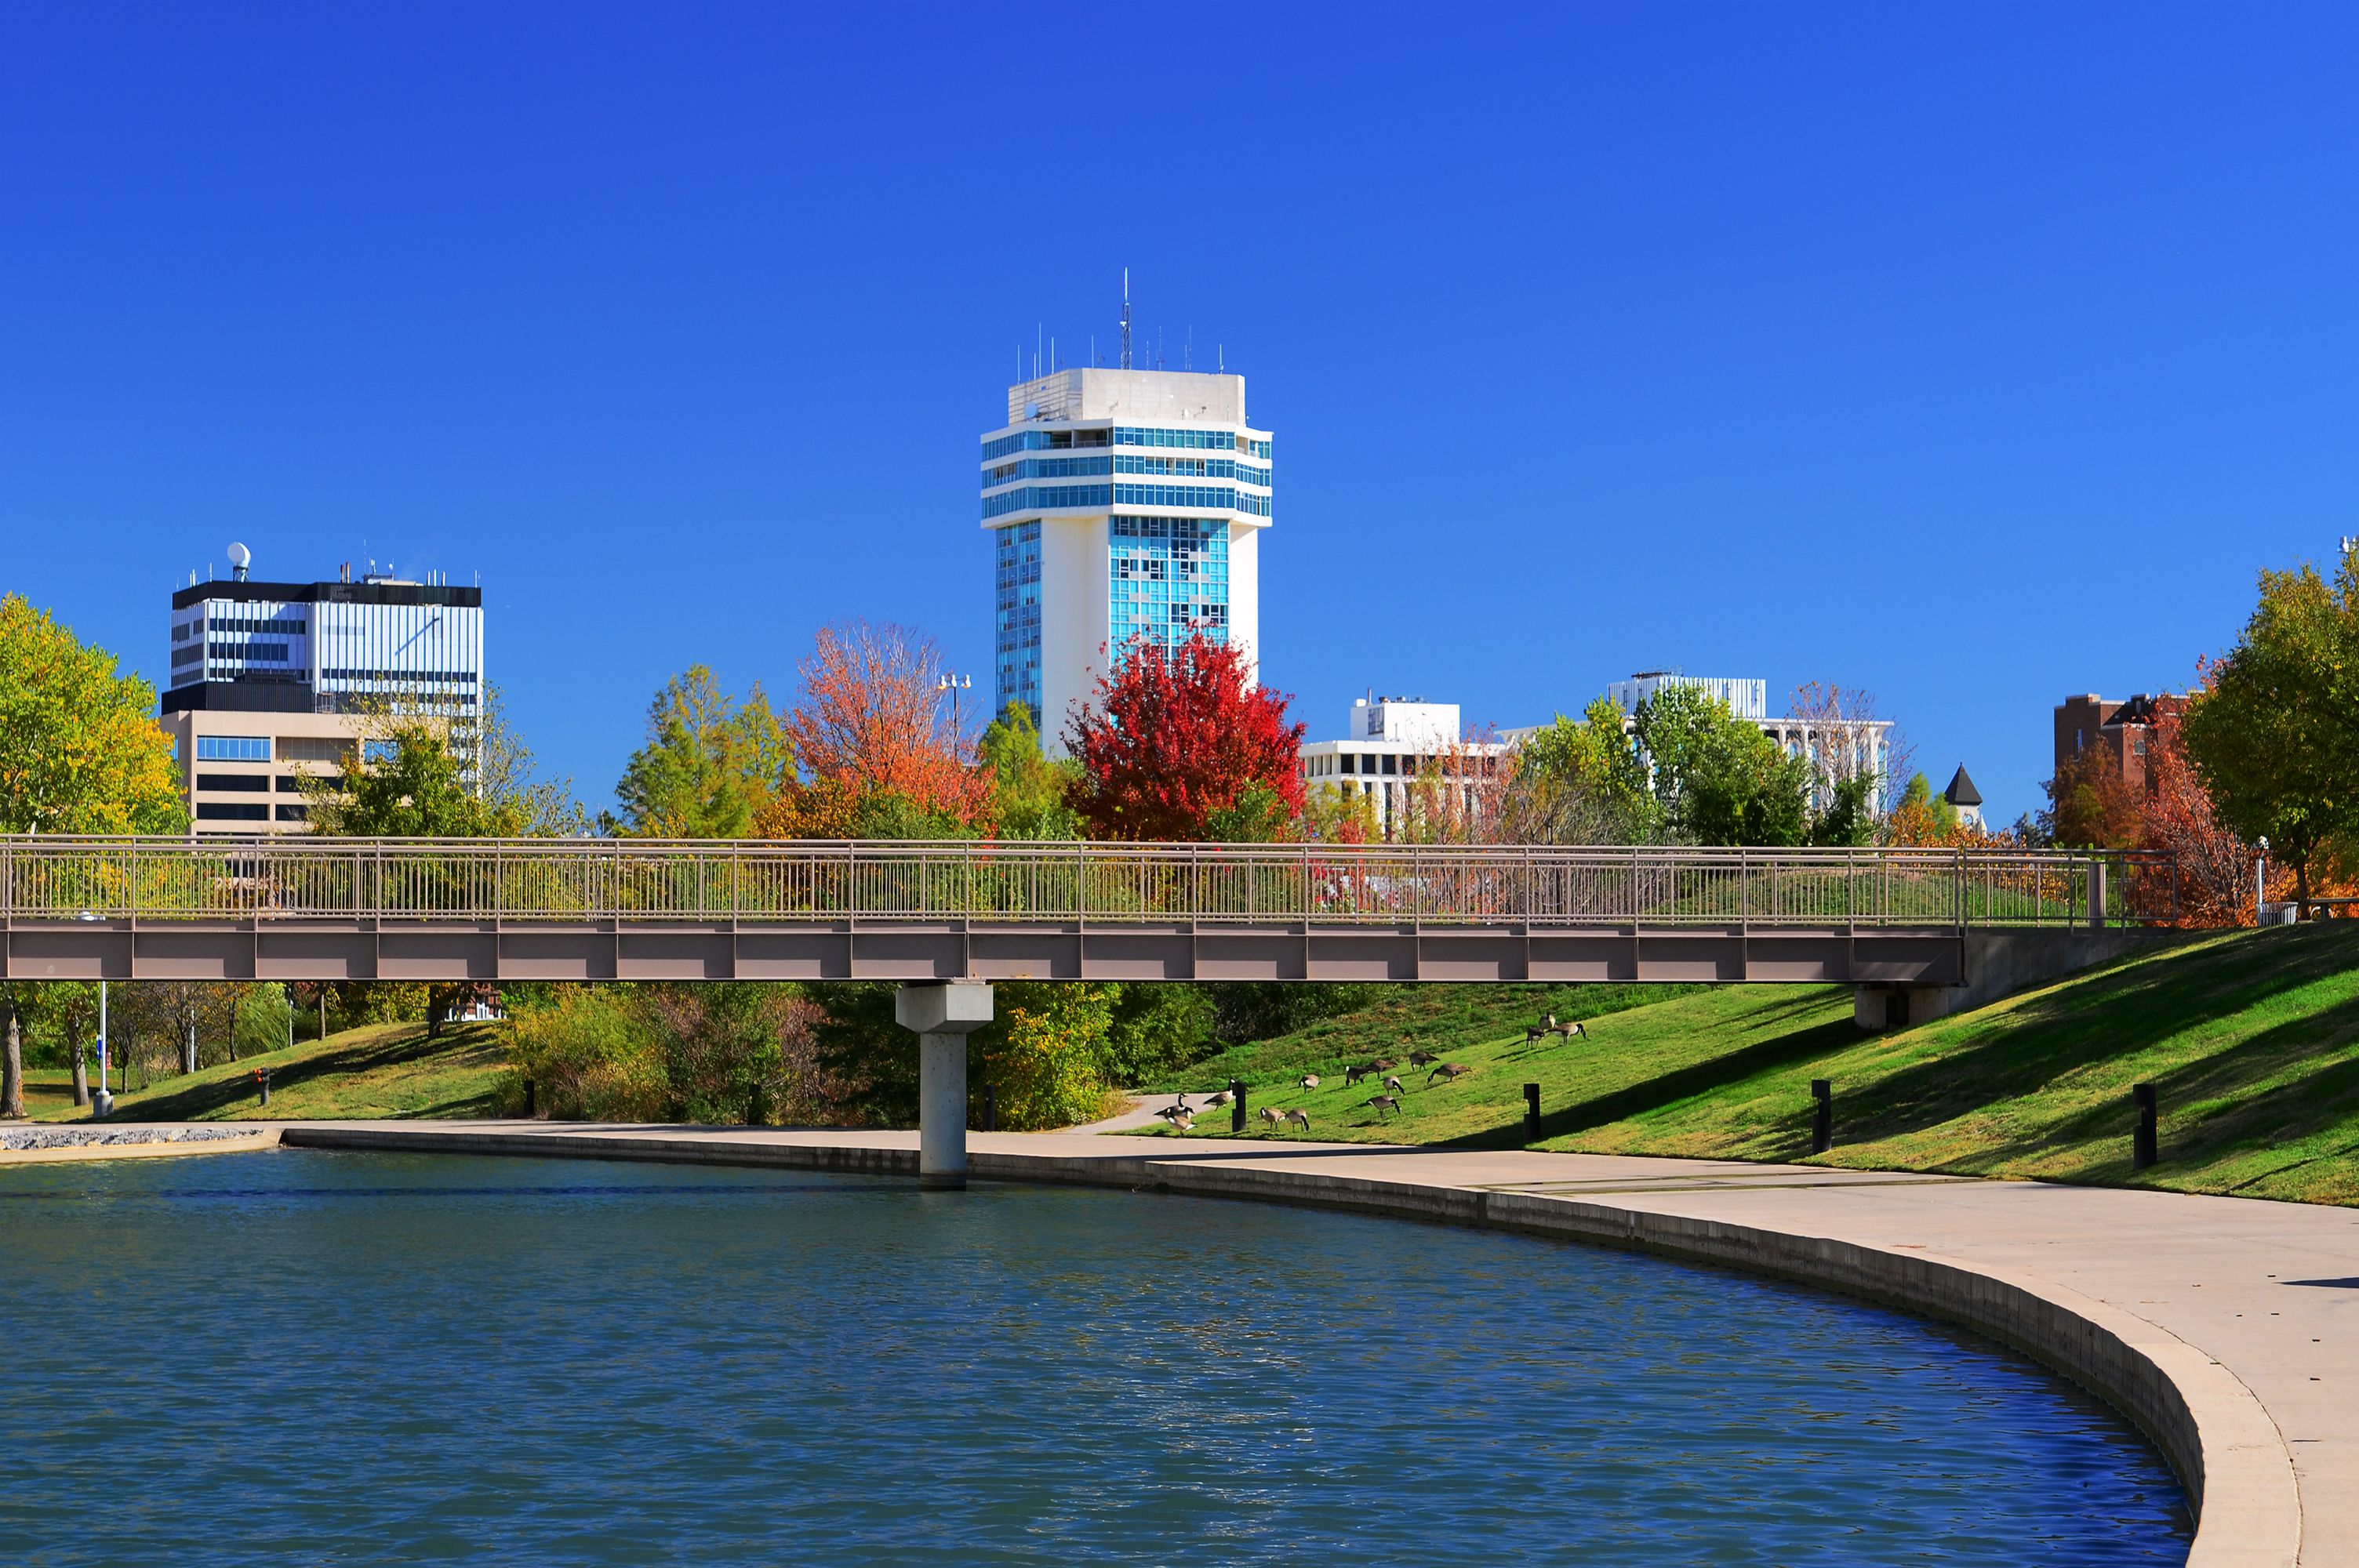 Downtown Wichita skyline with a waterway and park in foreground